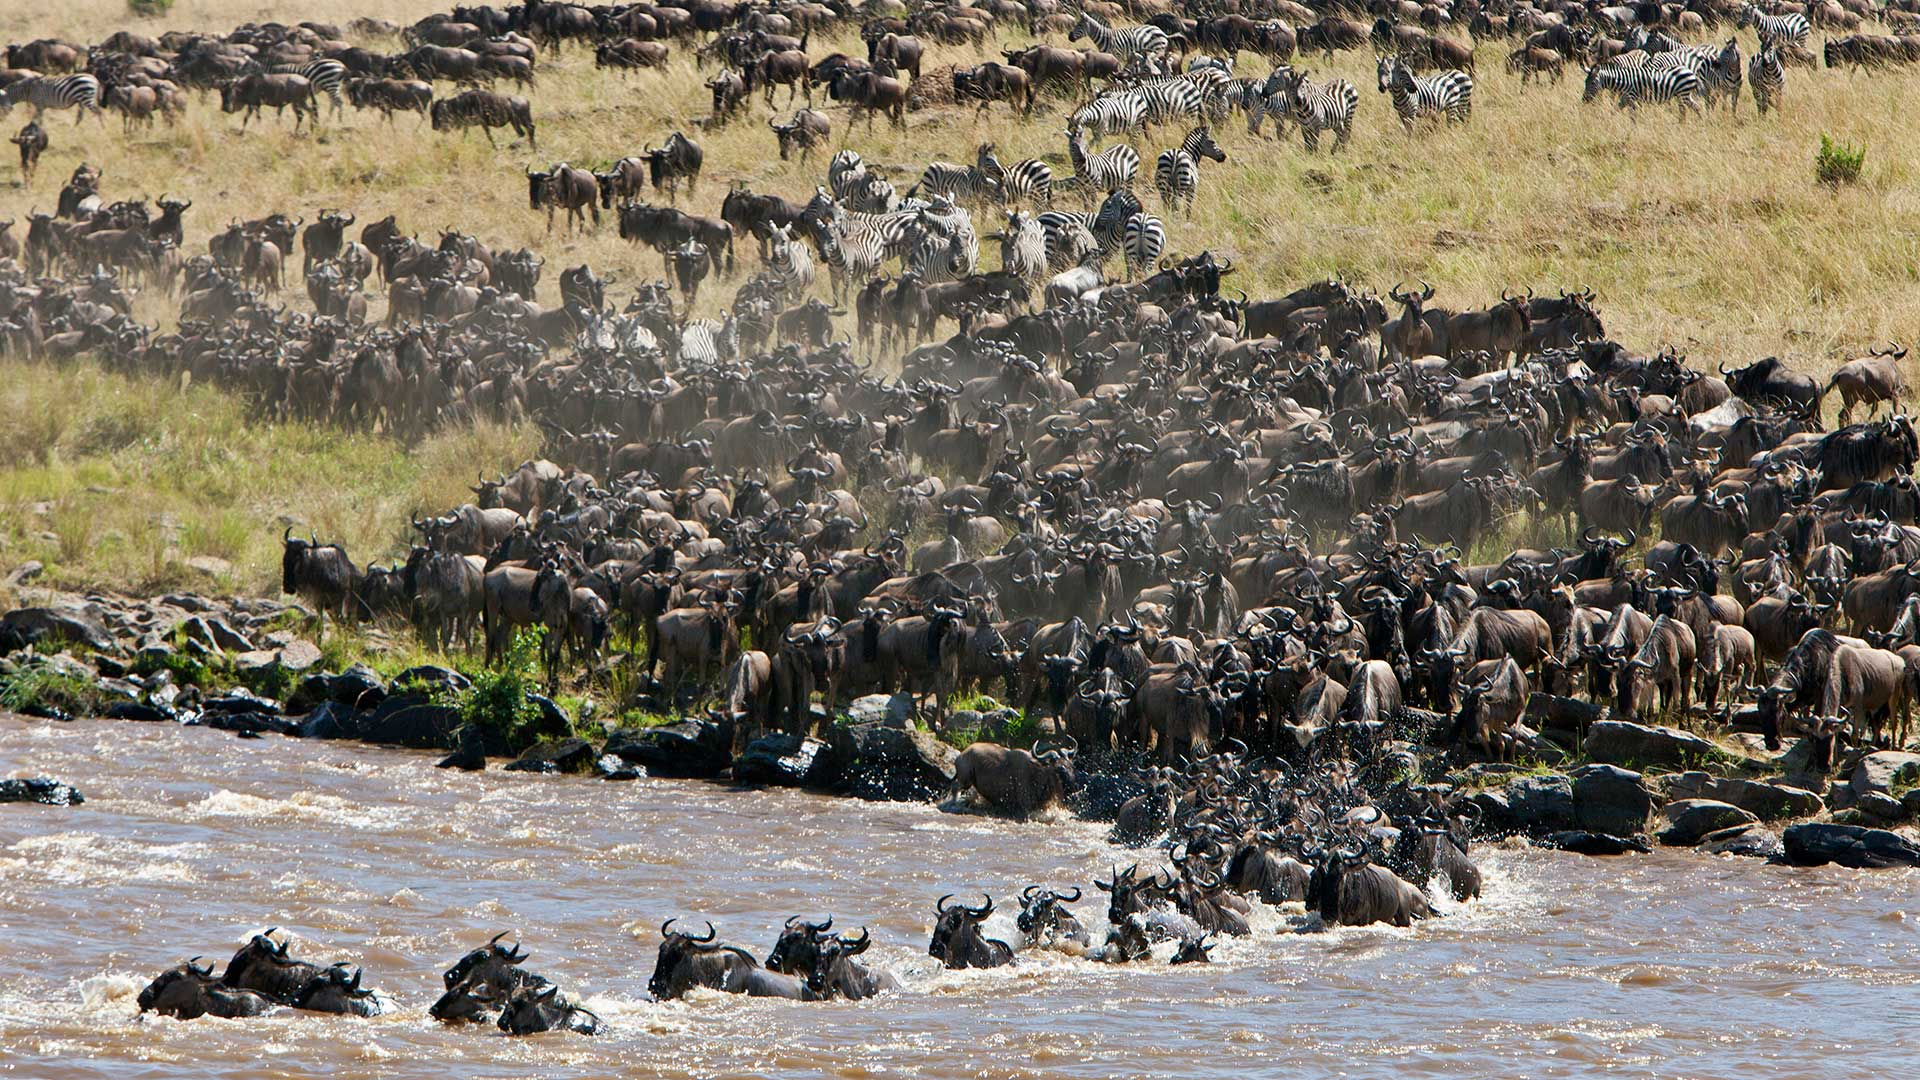 Wildebeests massing to cross the Mara River during their annual migration in northern Tanzania.